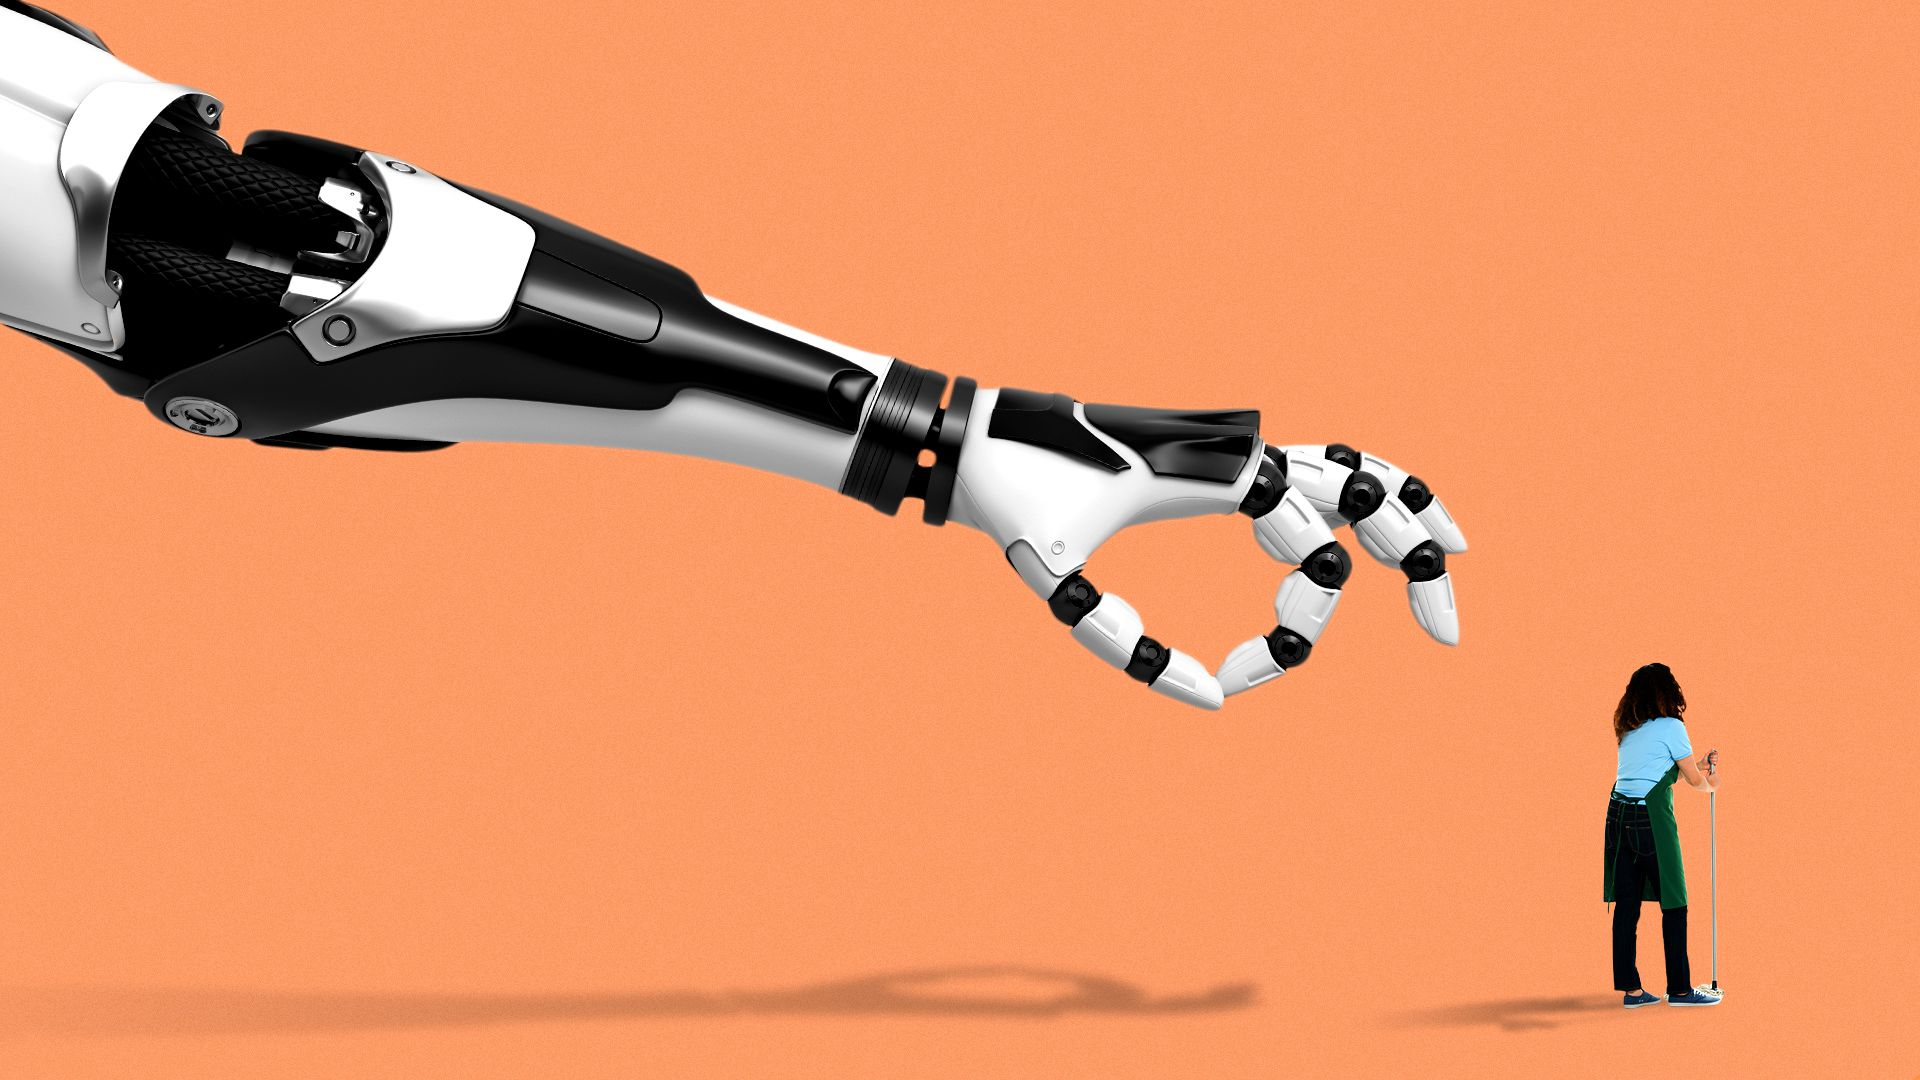 Illustration of a giant robot arm with it's hand getting ready to flick a retail/janitorial worker off screen